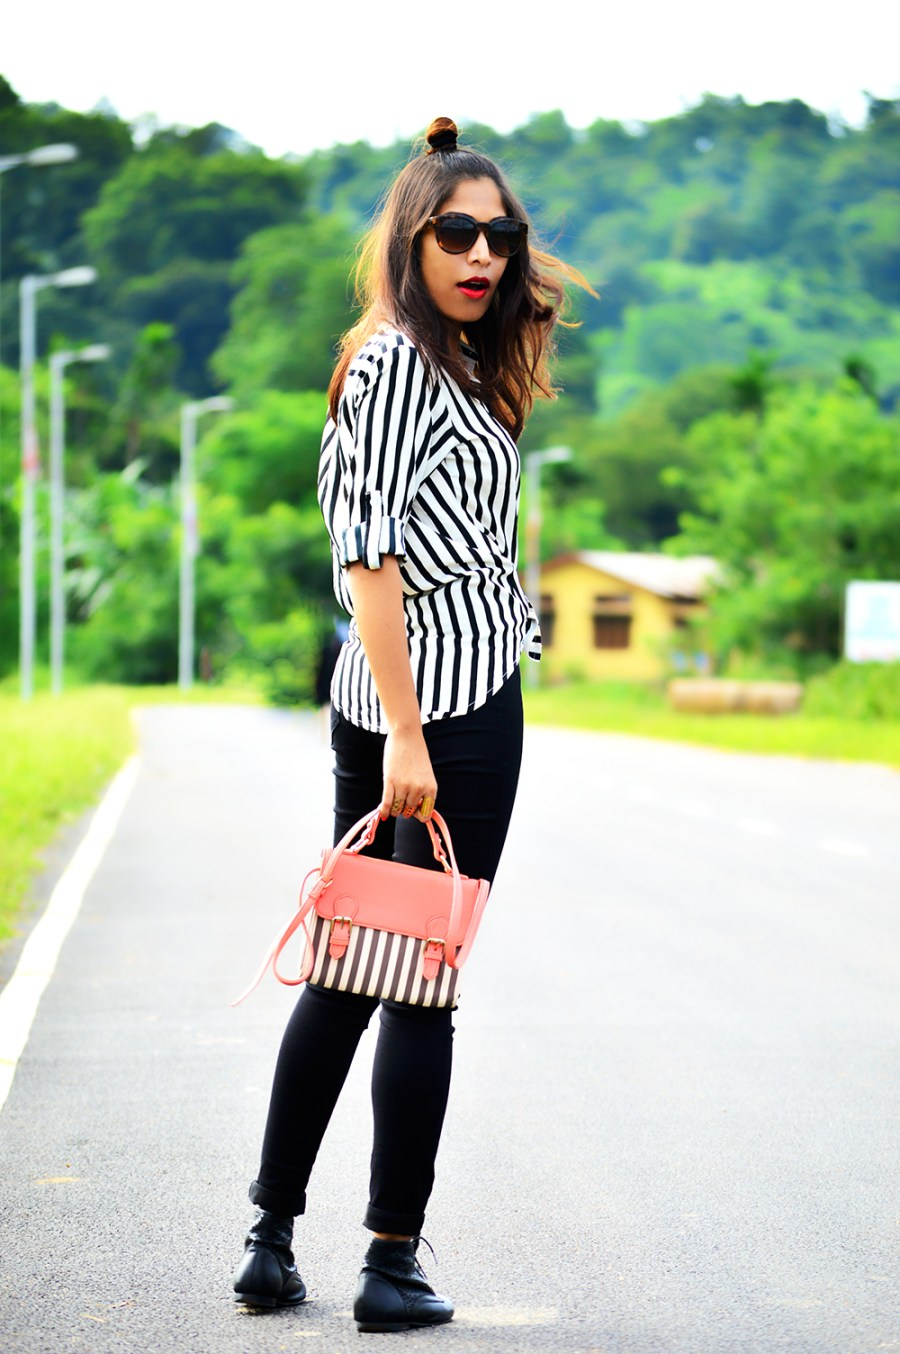 Fashion, Style, Indian Fashion Blogger, Fashion Blogger, Street Style, Summer Fashion, Stripes, Striped Shirt, Black High Wasit Jeans, Black Boots, Hairstyle, Style Over Coffee, Beauty, Sarmistha Goswami, Pankaj Jyoti Barua-5